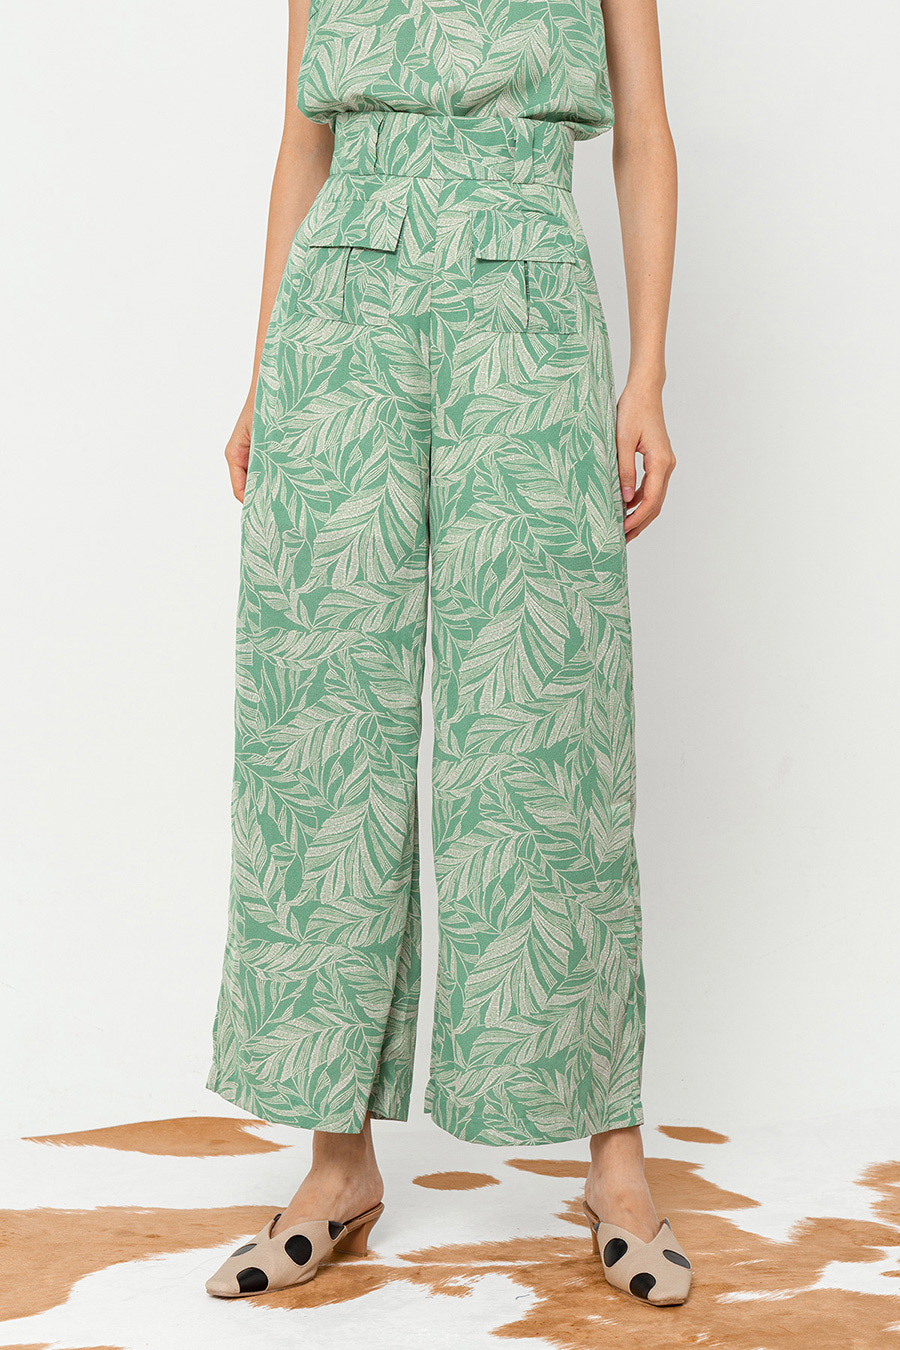 *BO* HEBERT PANTS - CLEMENSIA [BY MODPARADE]